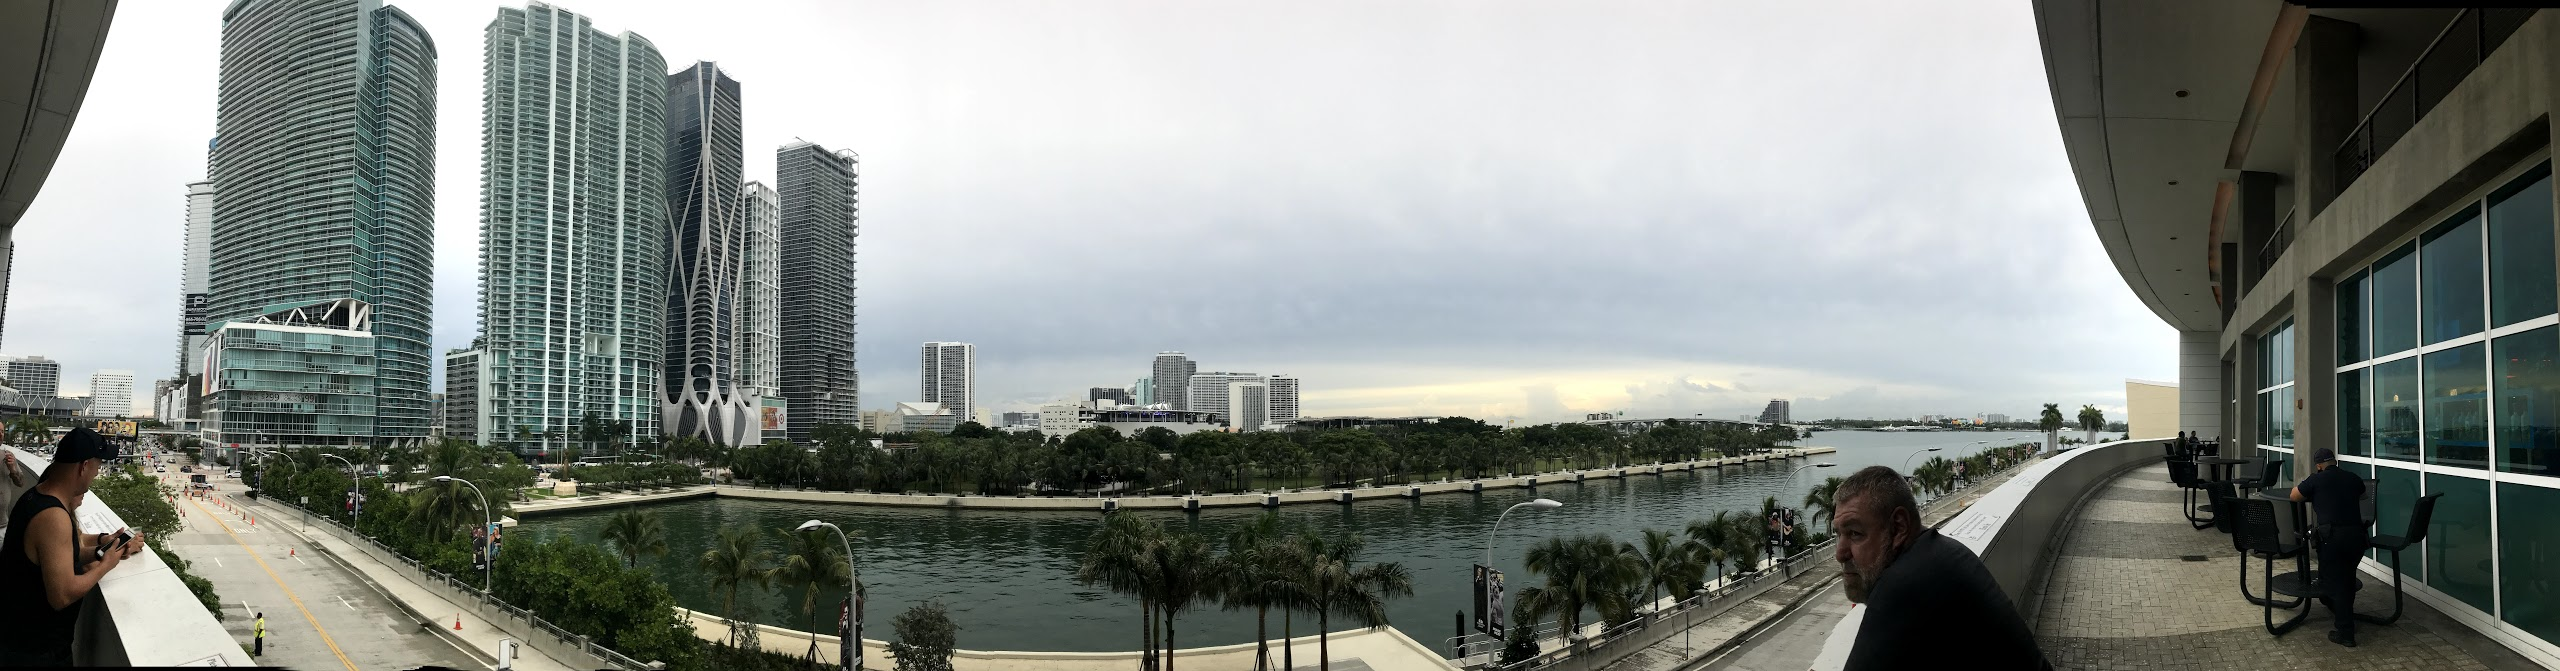 DT Miami from the AA Arena